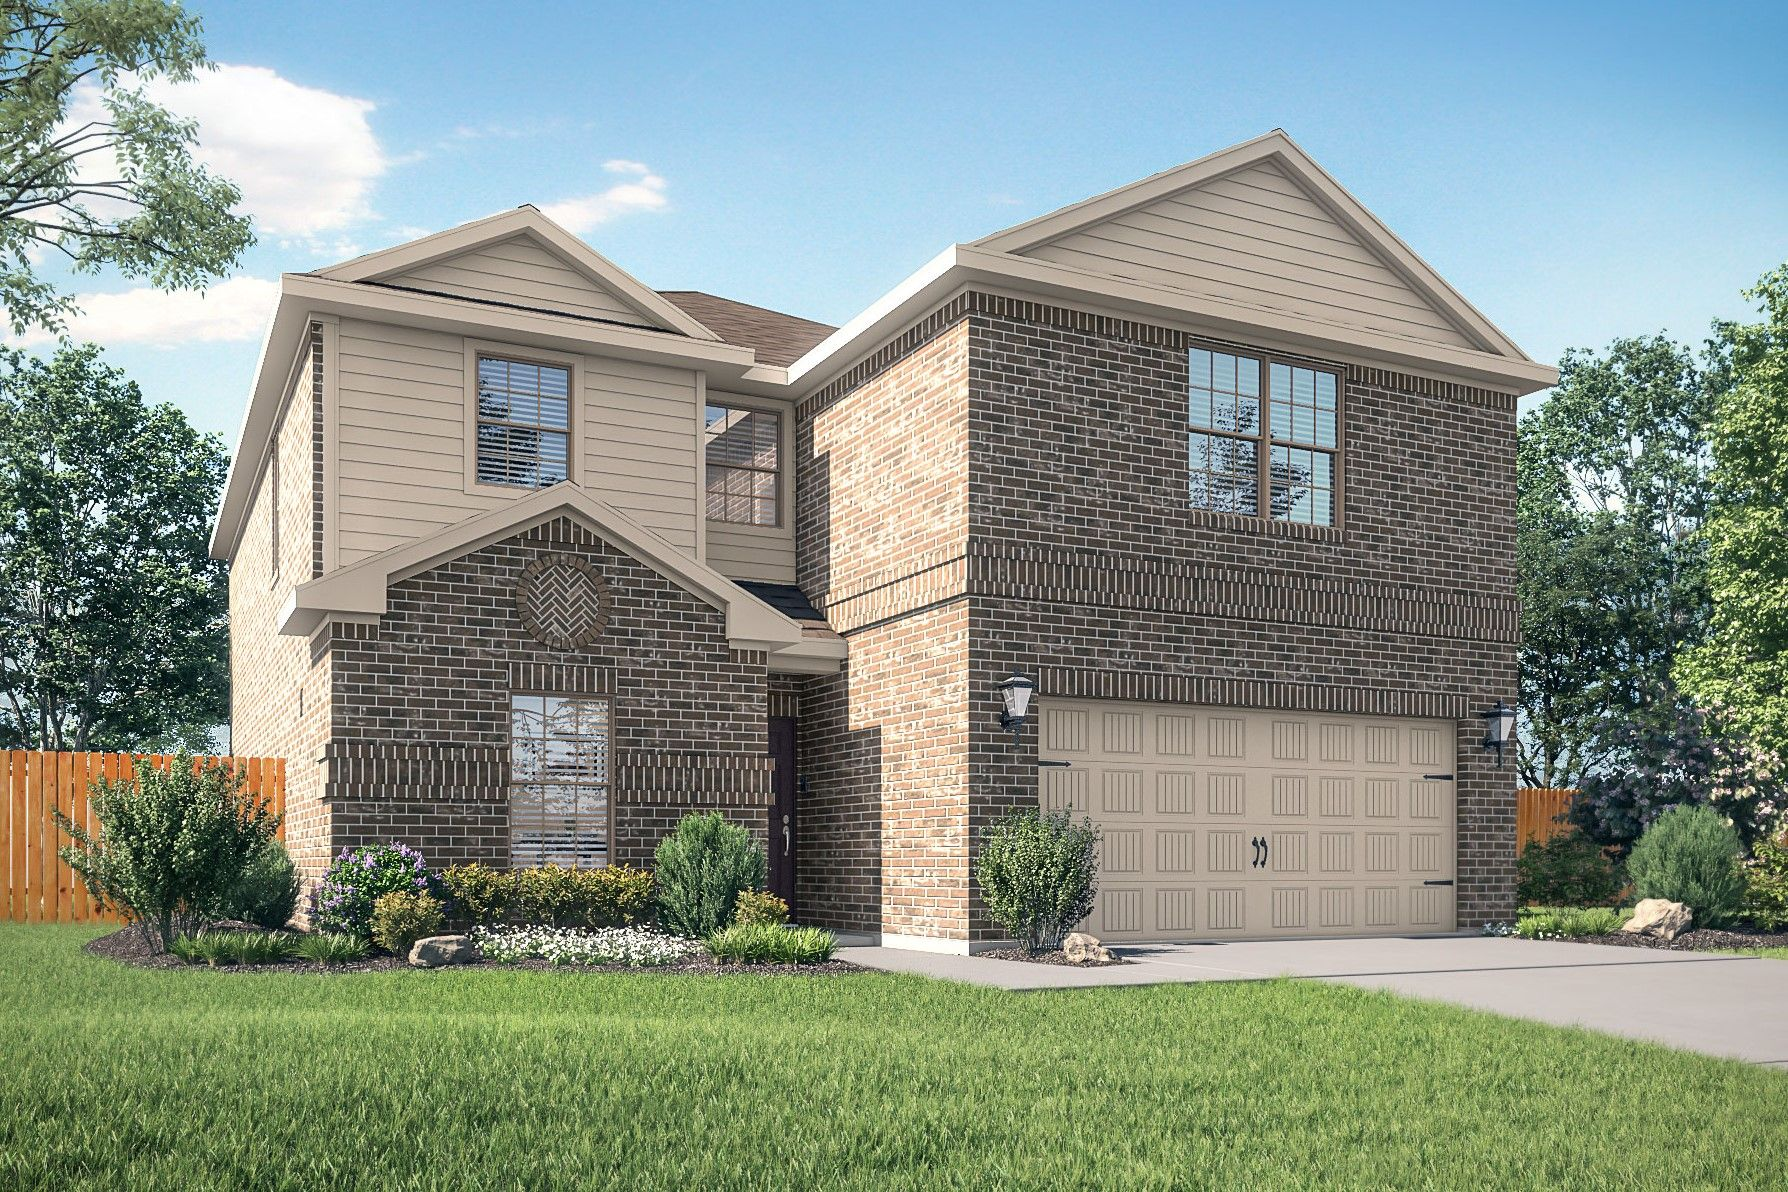 The Driftwood by LGI Homes:The stunning Driftwood plan by LGI Homes.